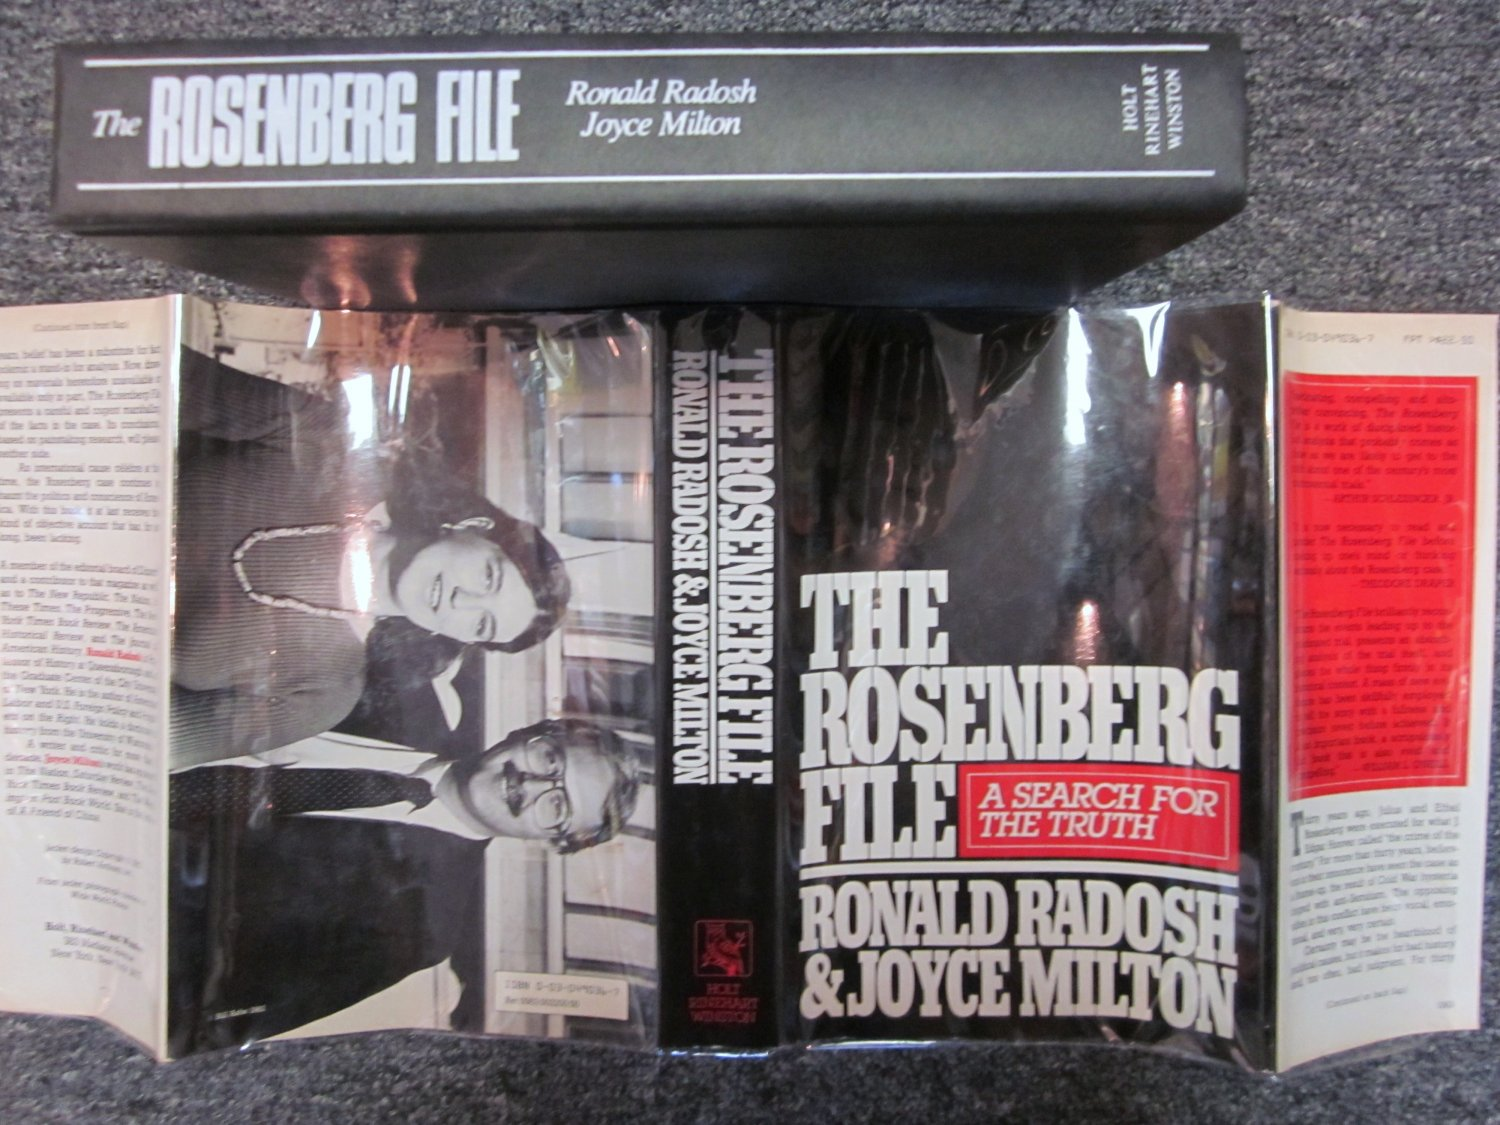 THE ROSENBERG FILE A SEARCH FOR THE TRUTH FIRST EDITION